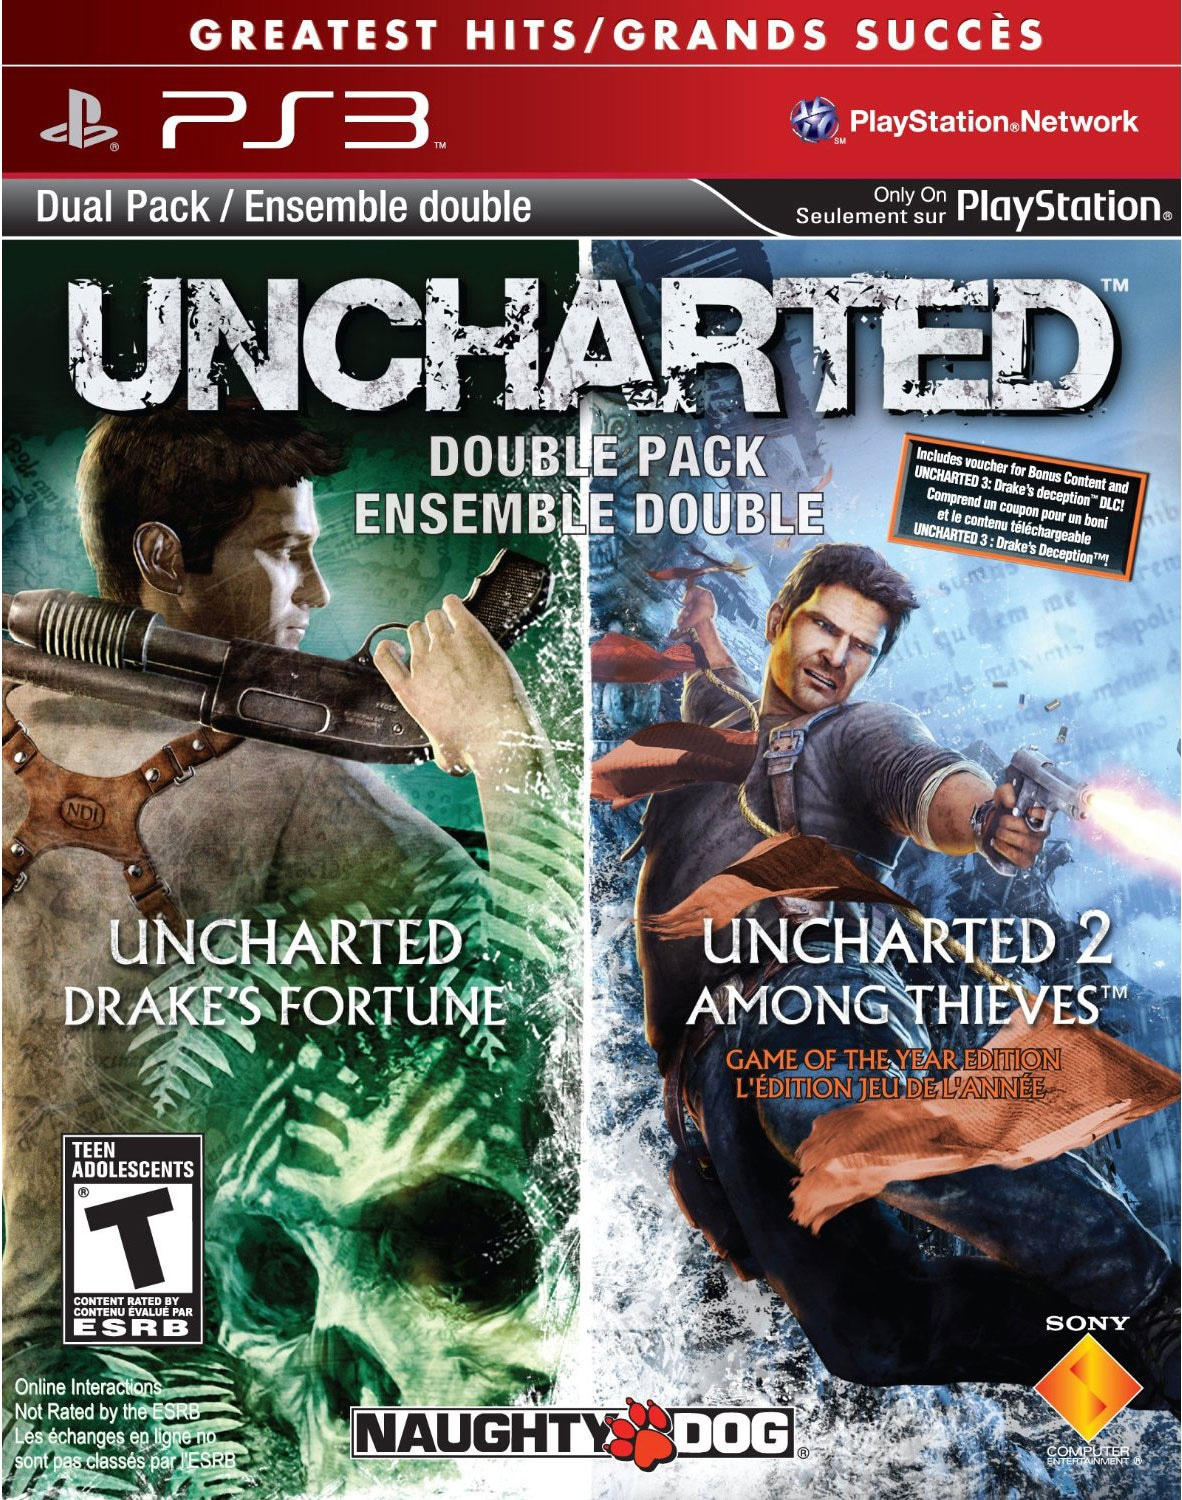 PS3 - Uncharted 1 & 2 Pak